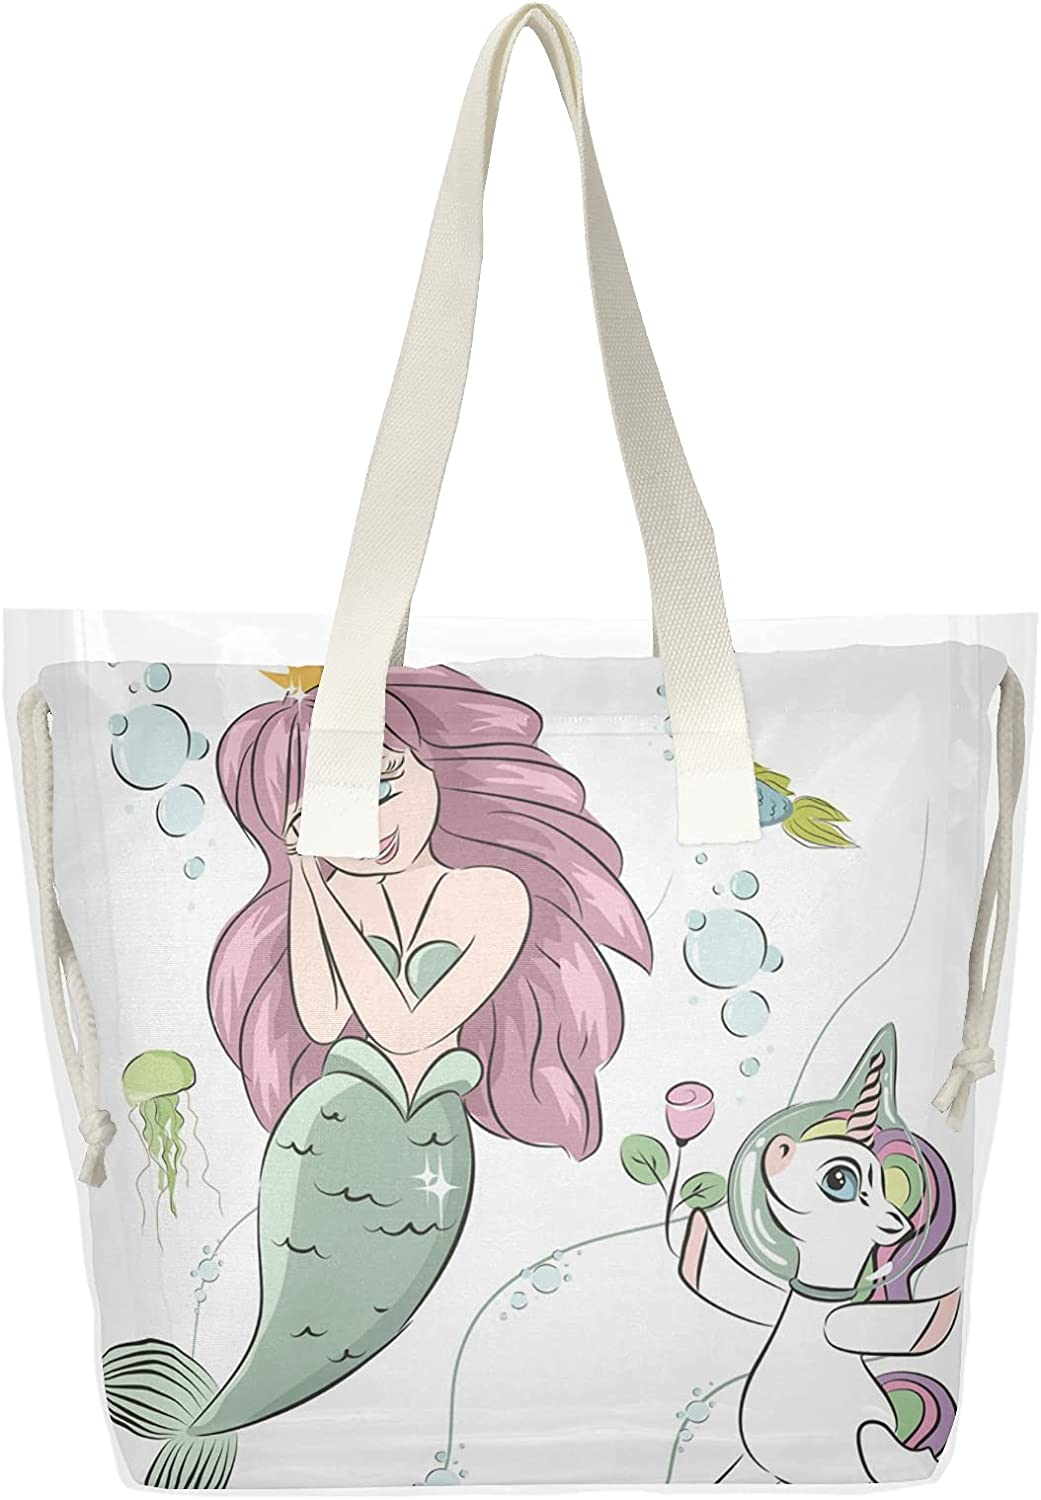 Beautiful Philadelphia Mall Mermaid And Unicorn Women Han Bags Clear Tote Shoulder Opening large release sale